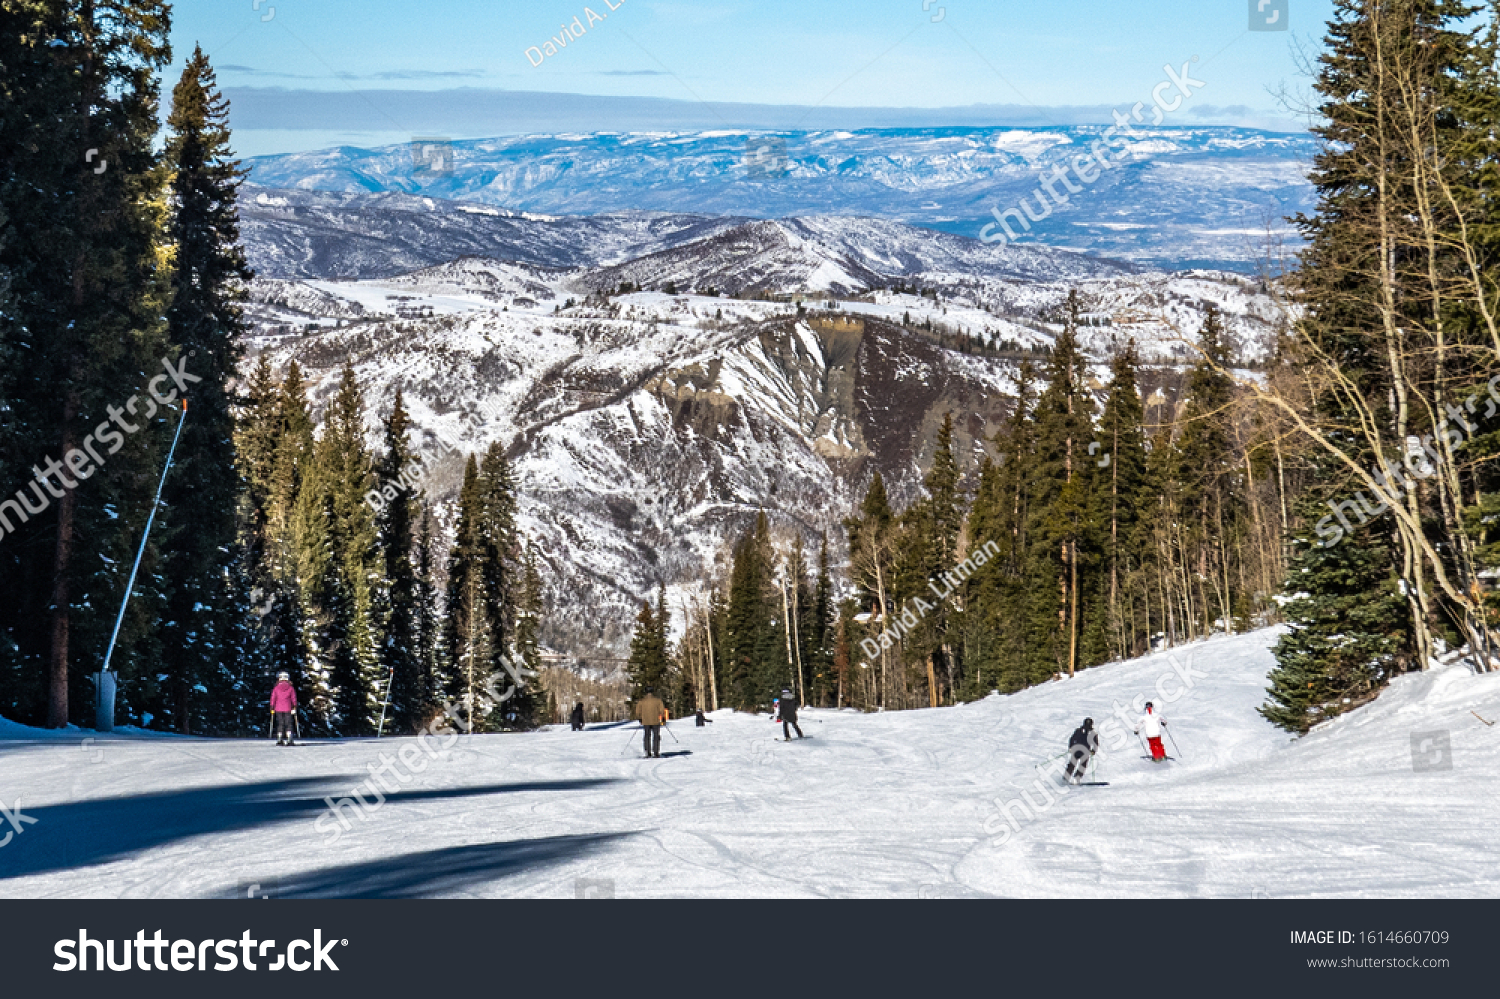 Skiers and snowboarders descend the slopes of the Aspen Snomass ski resort, in the Rocky Mountains of Colorado.